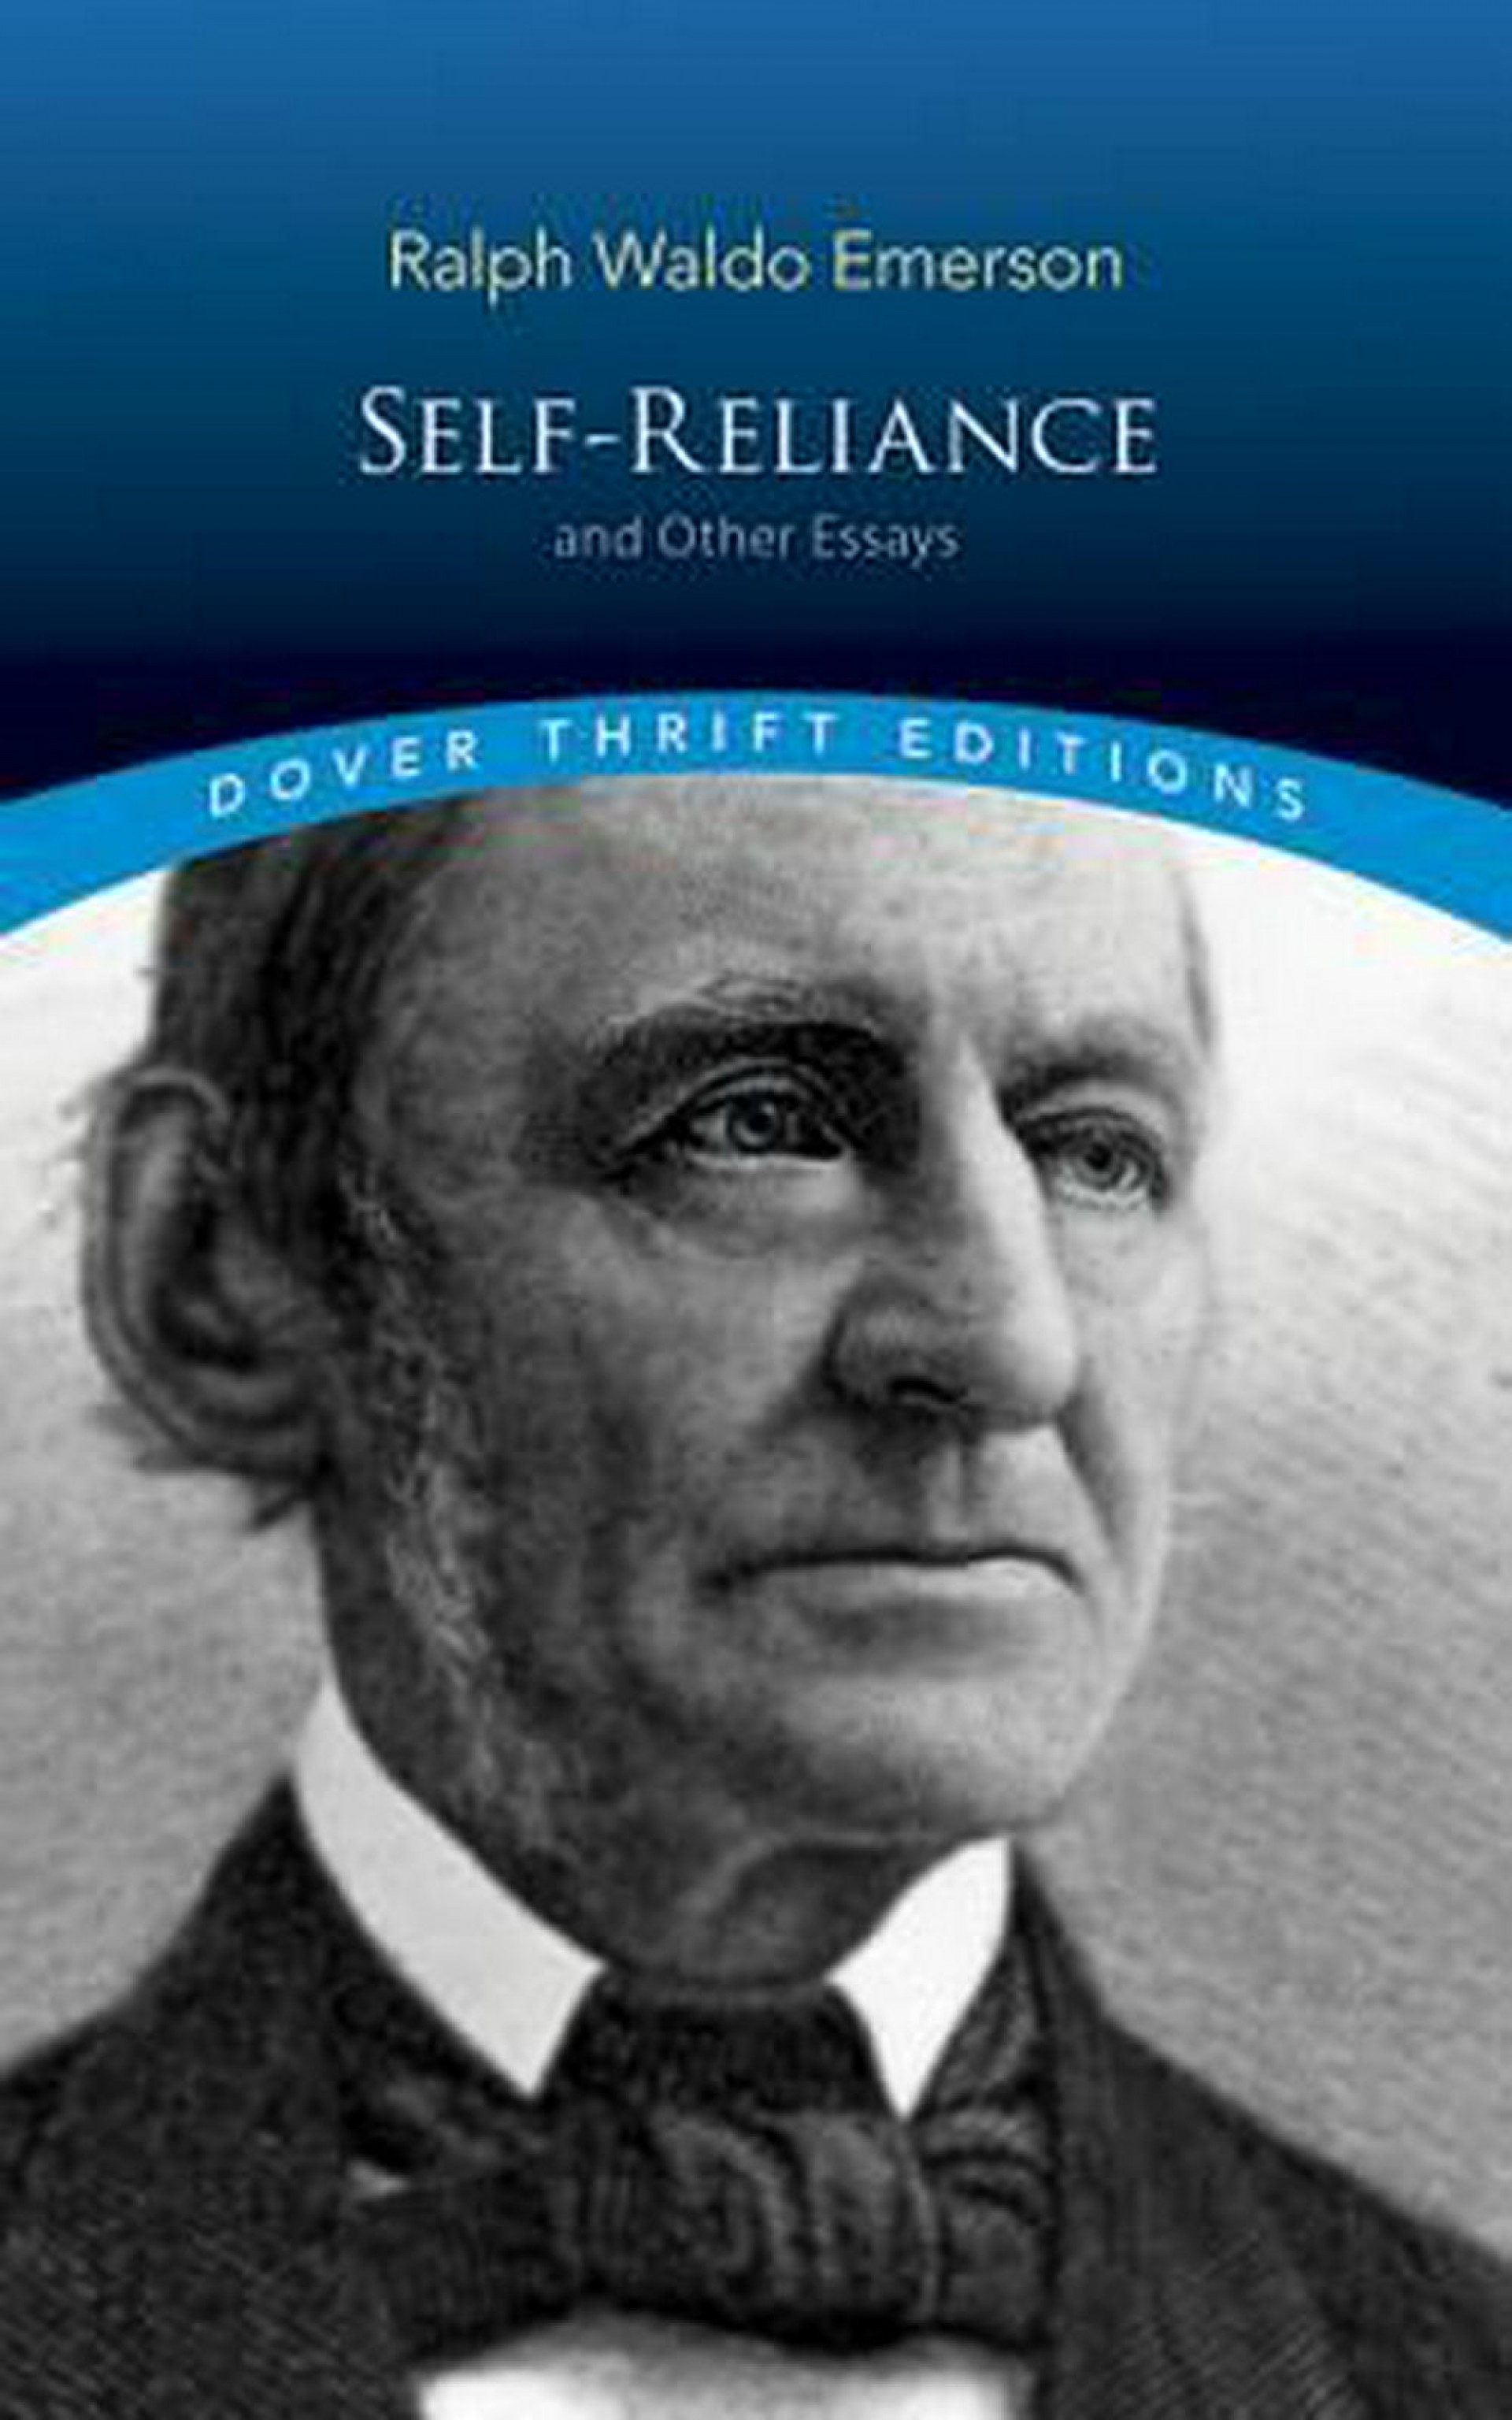 008 Essay Example 9780486277905r5c44ea15d6529 Self Reliance And Other Formidable Essays Ekşi Self-reliance (dover Thrift Editions) Pdf Epub 1920